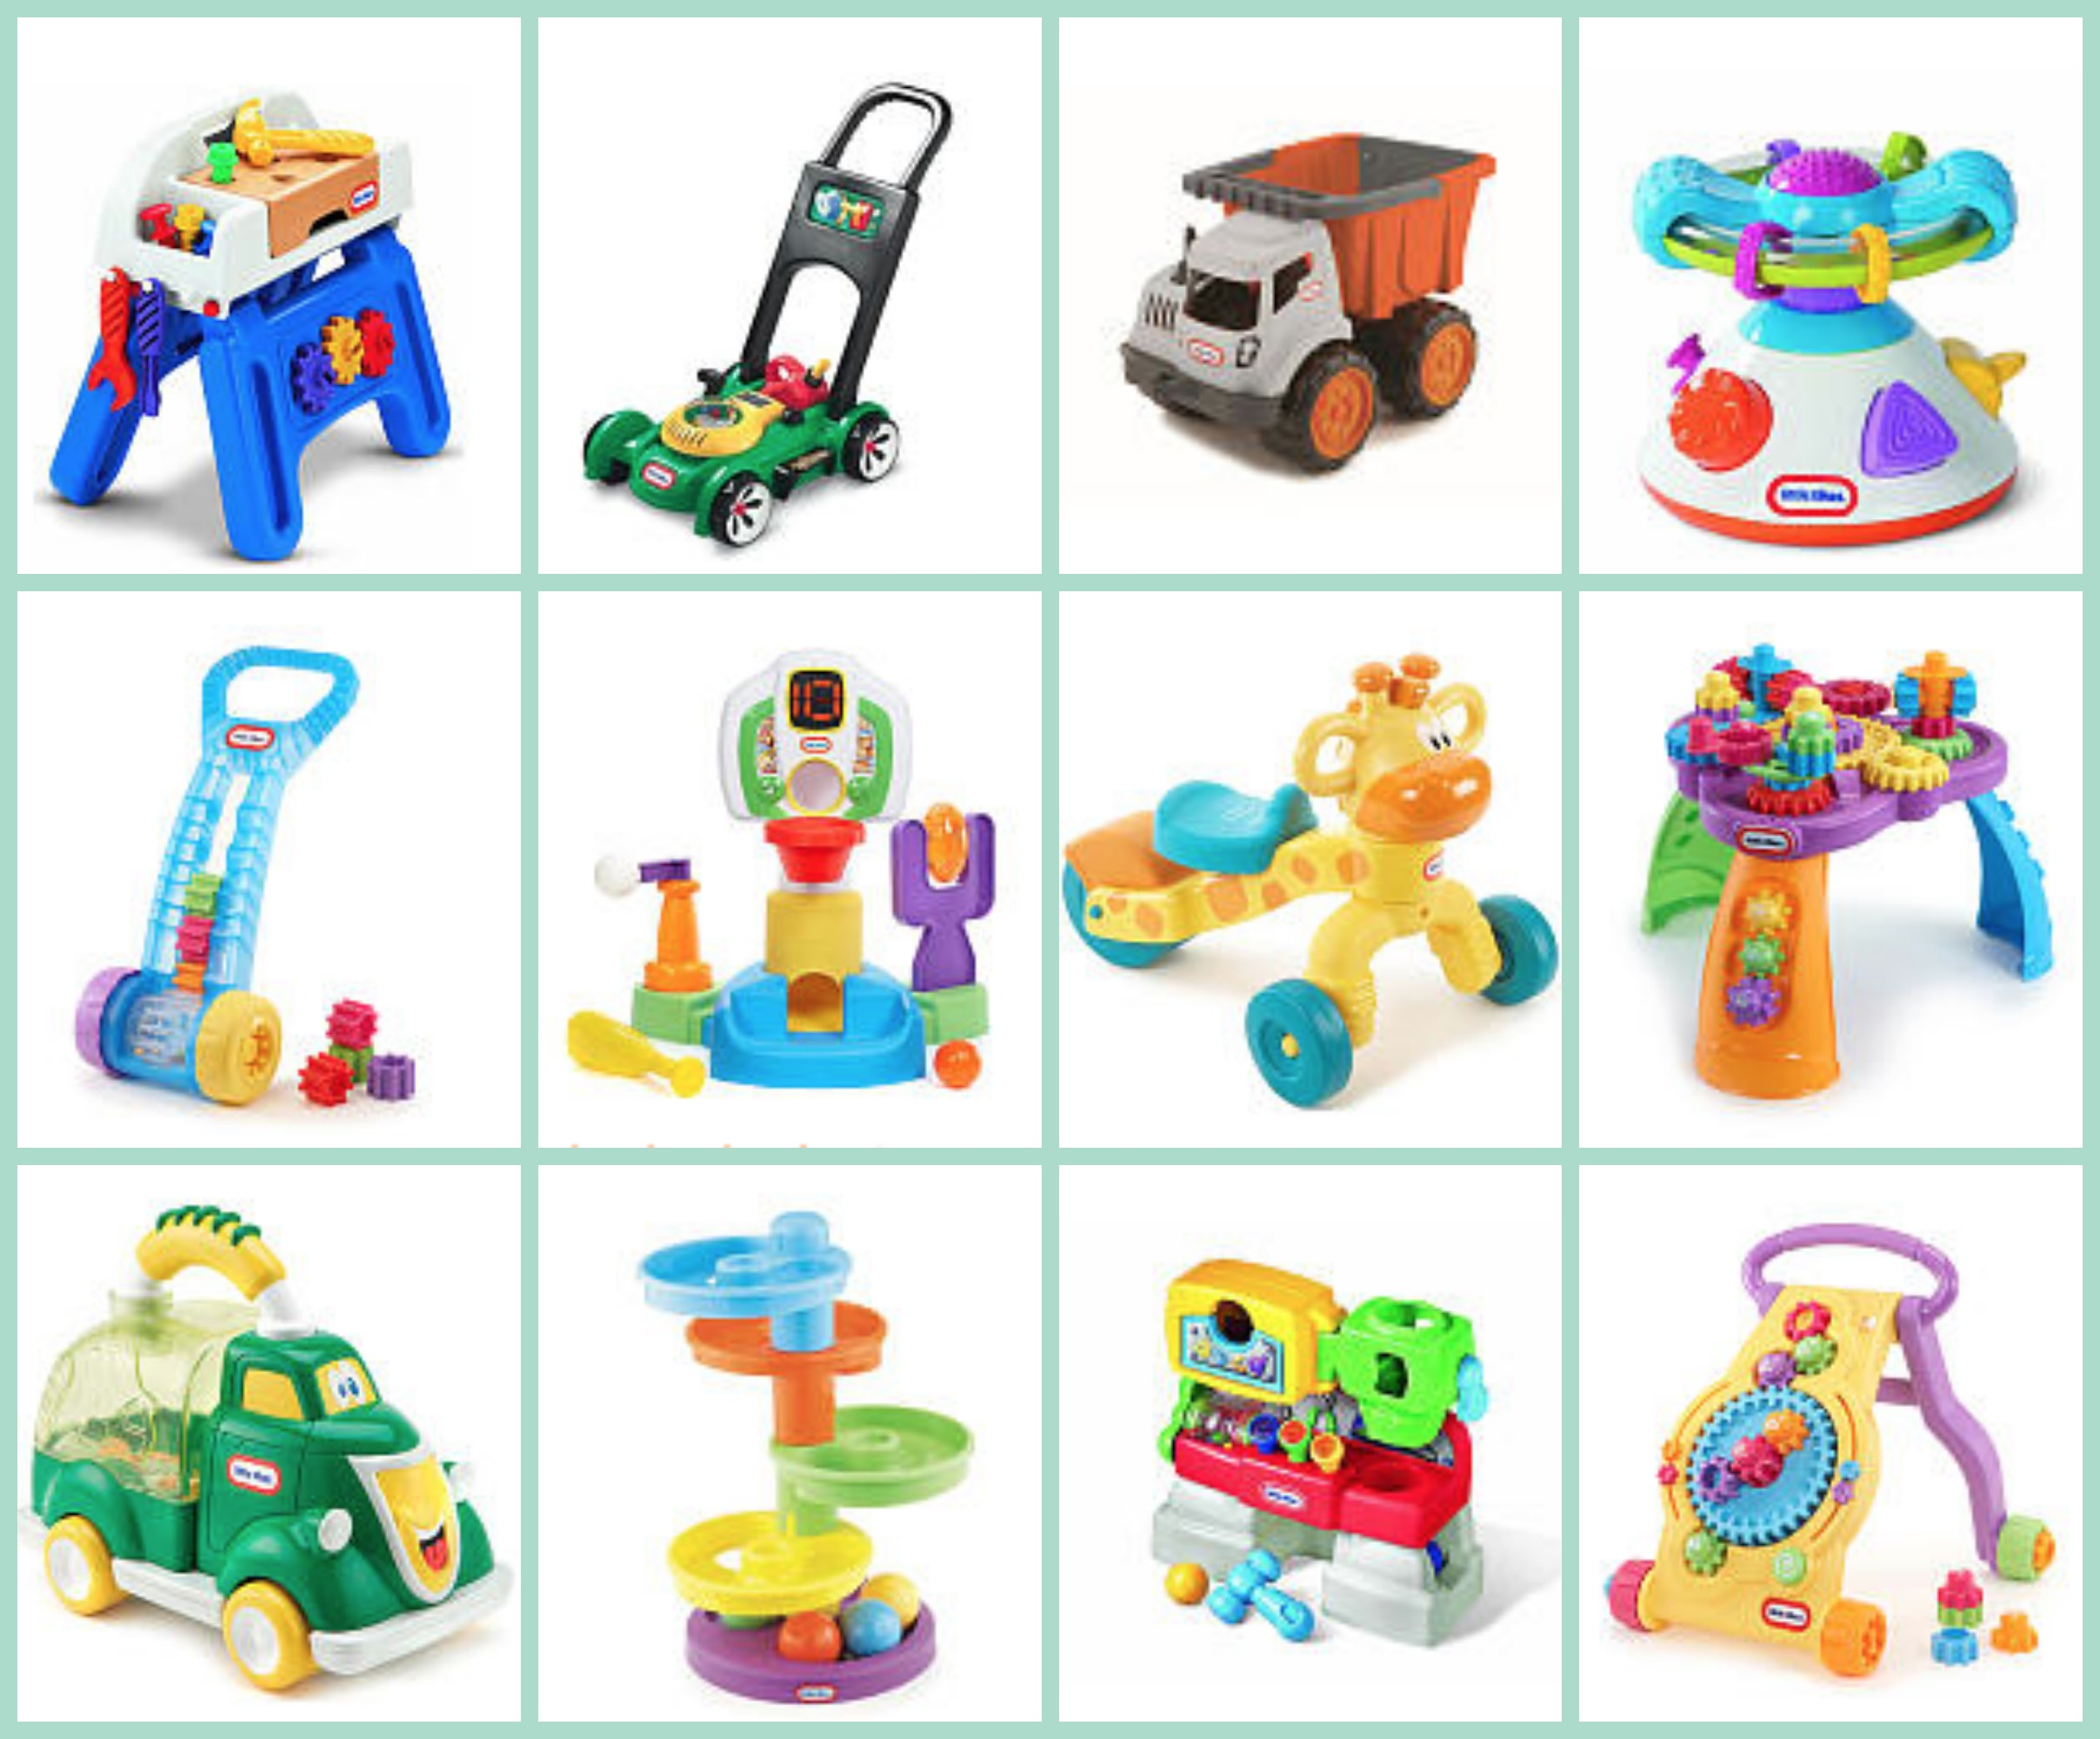 Printable coupons for little tikes toys